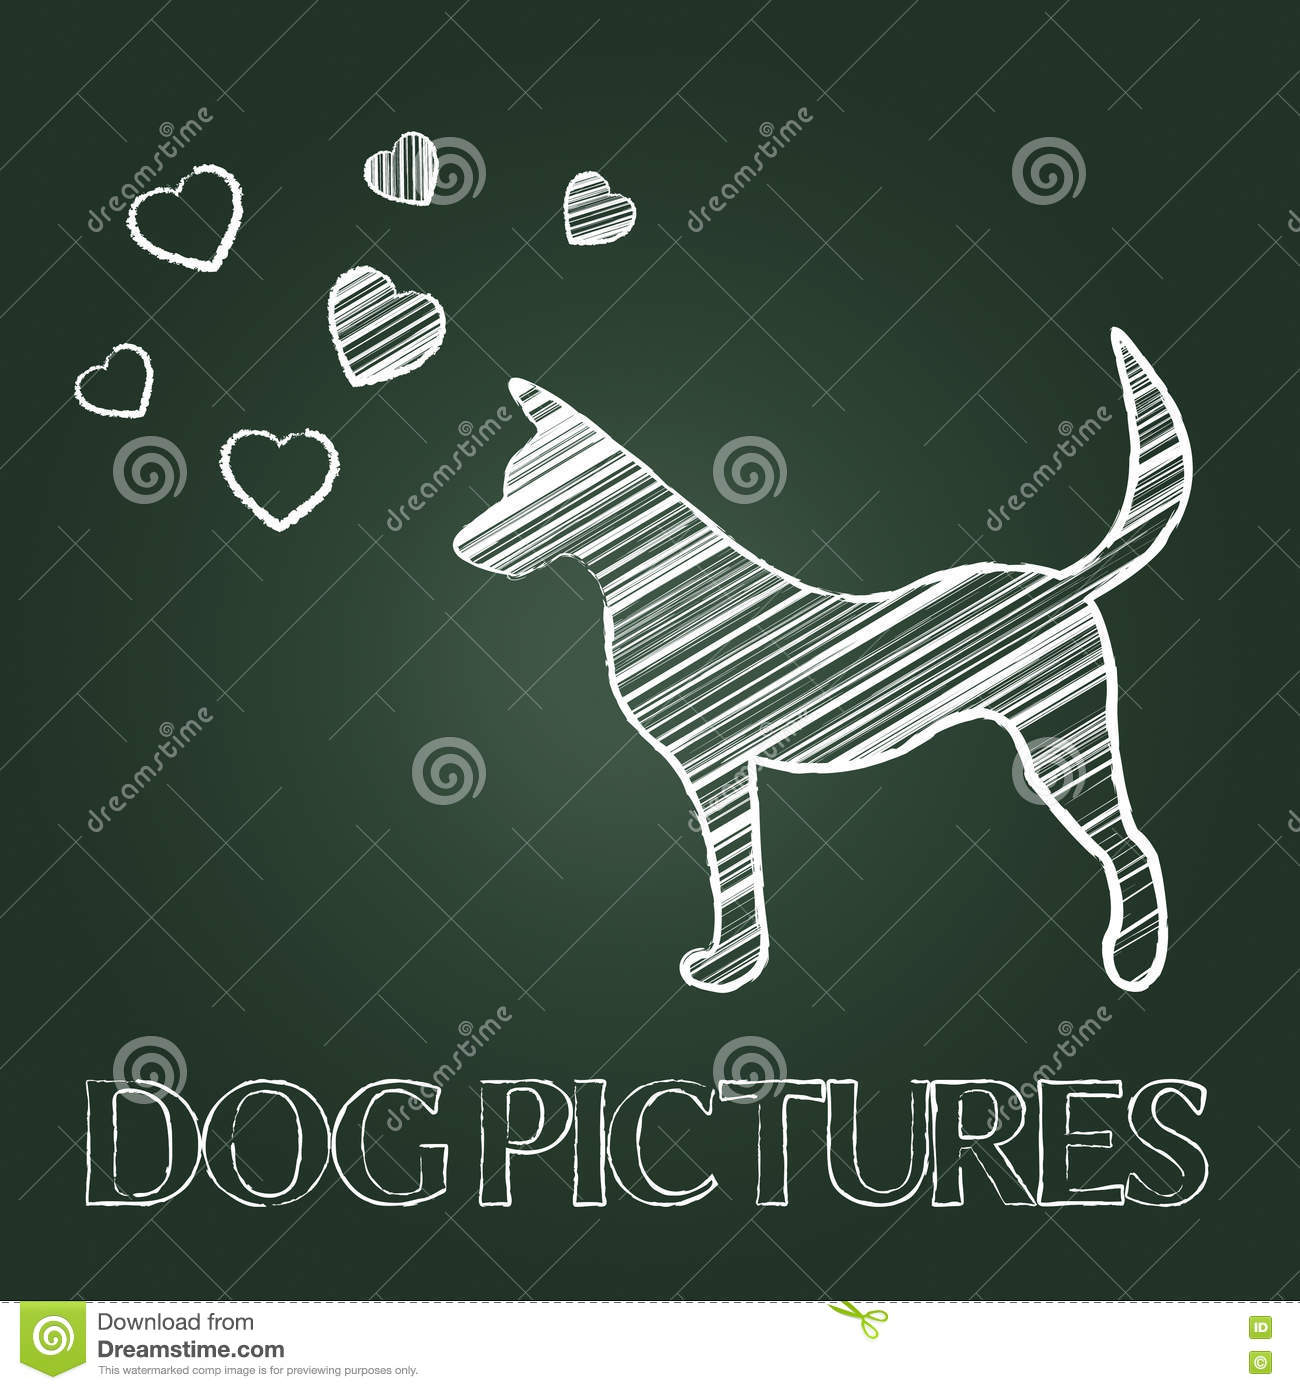 Dog Pictures Means Pets Images And Photographs